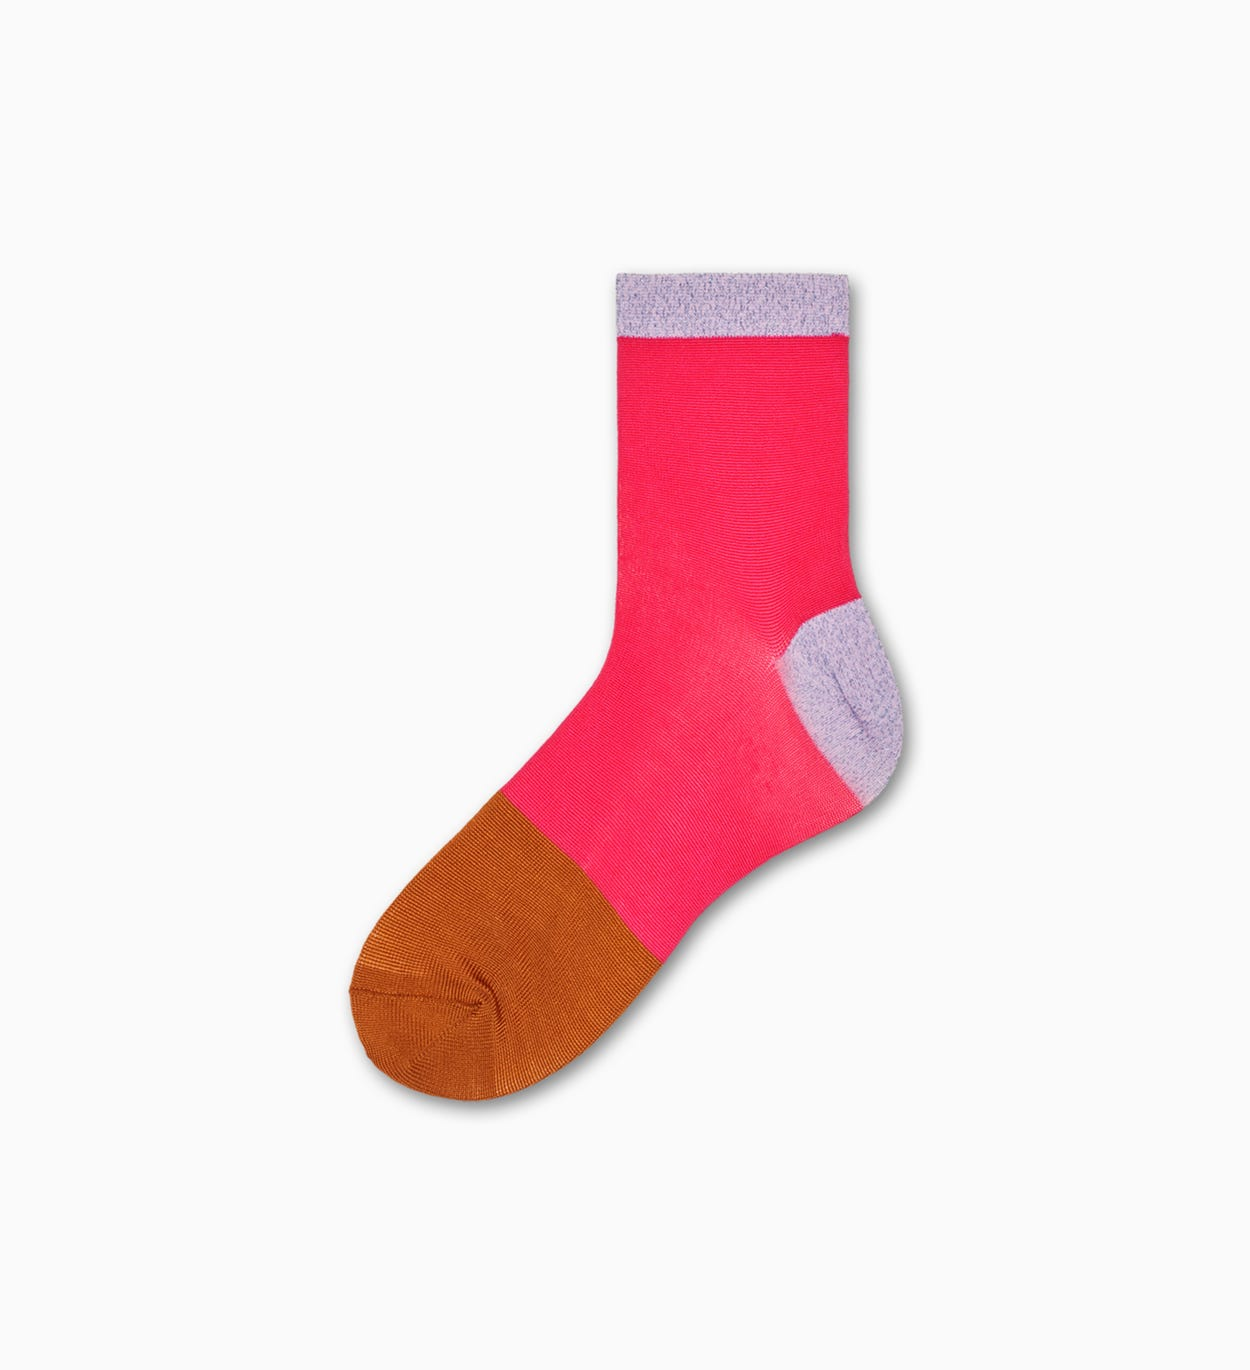 Pinke niedrige Socken: Liza | Hysteria by Happy Socks